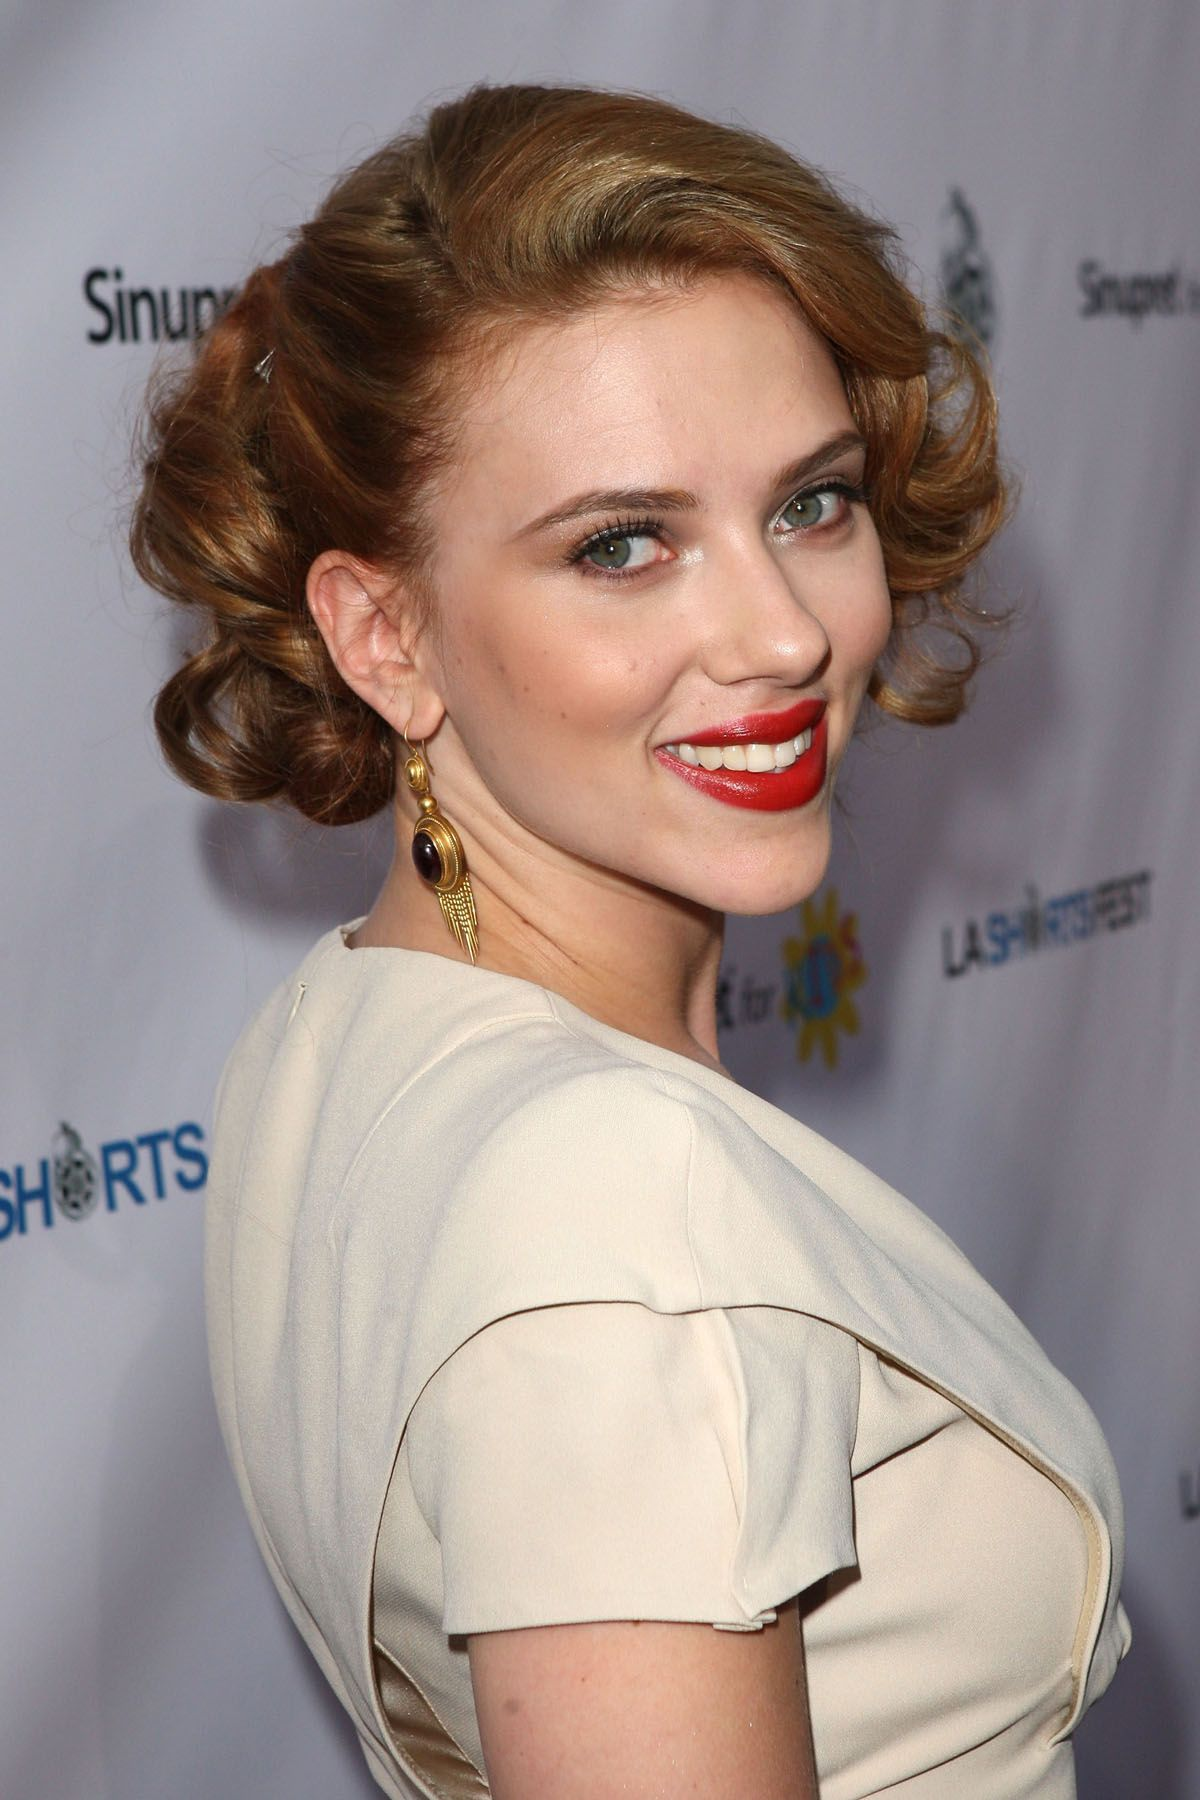 14 Best Short Curly Hairstyles For Women Short Haircuts For Curly Hair